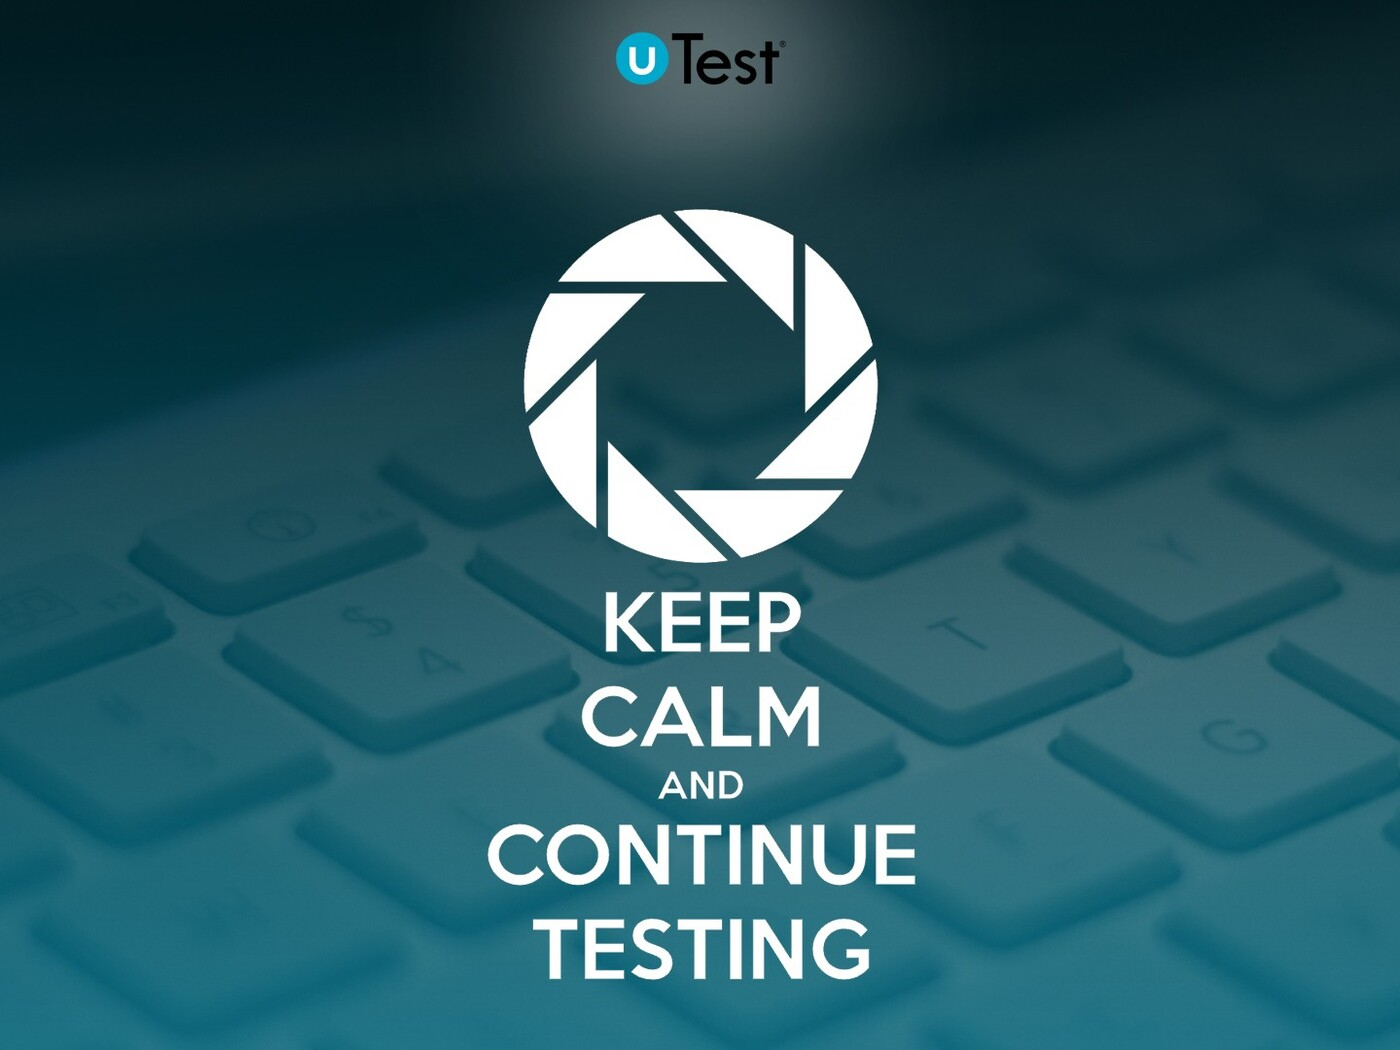 keep-calm-and-continue-testing-pic.jpg